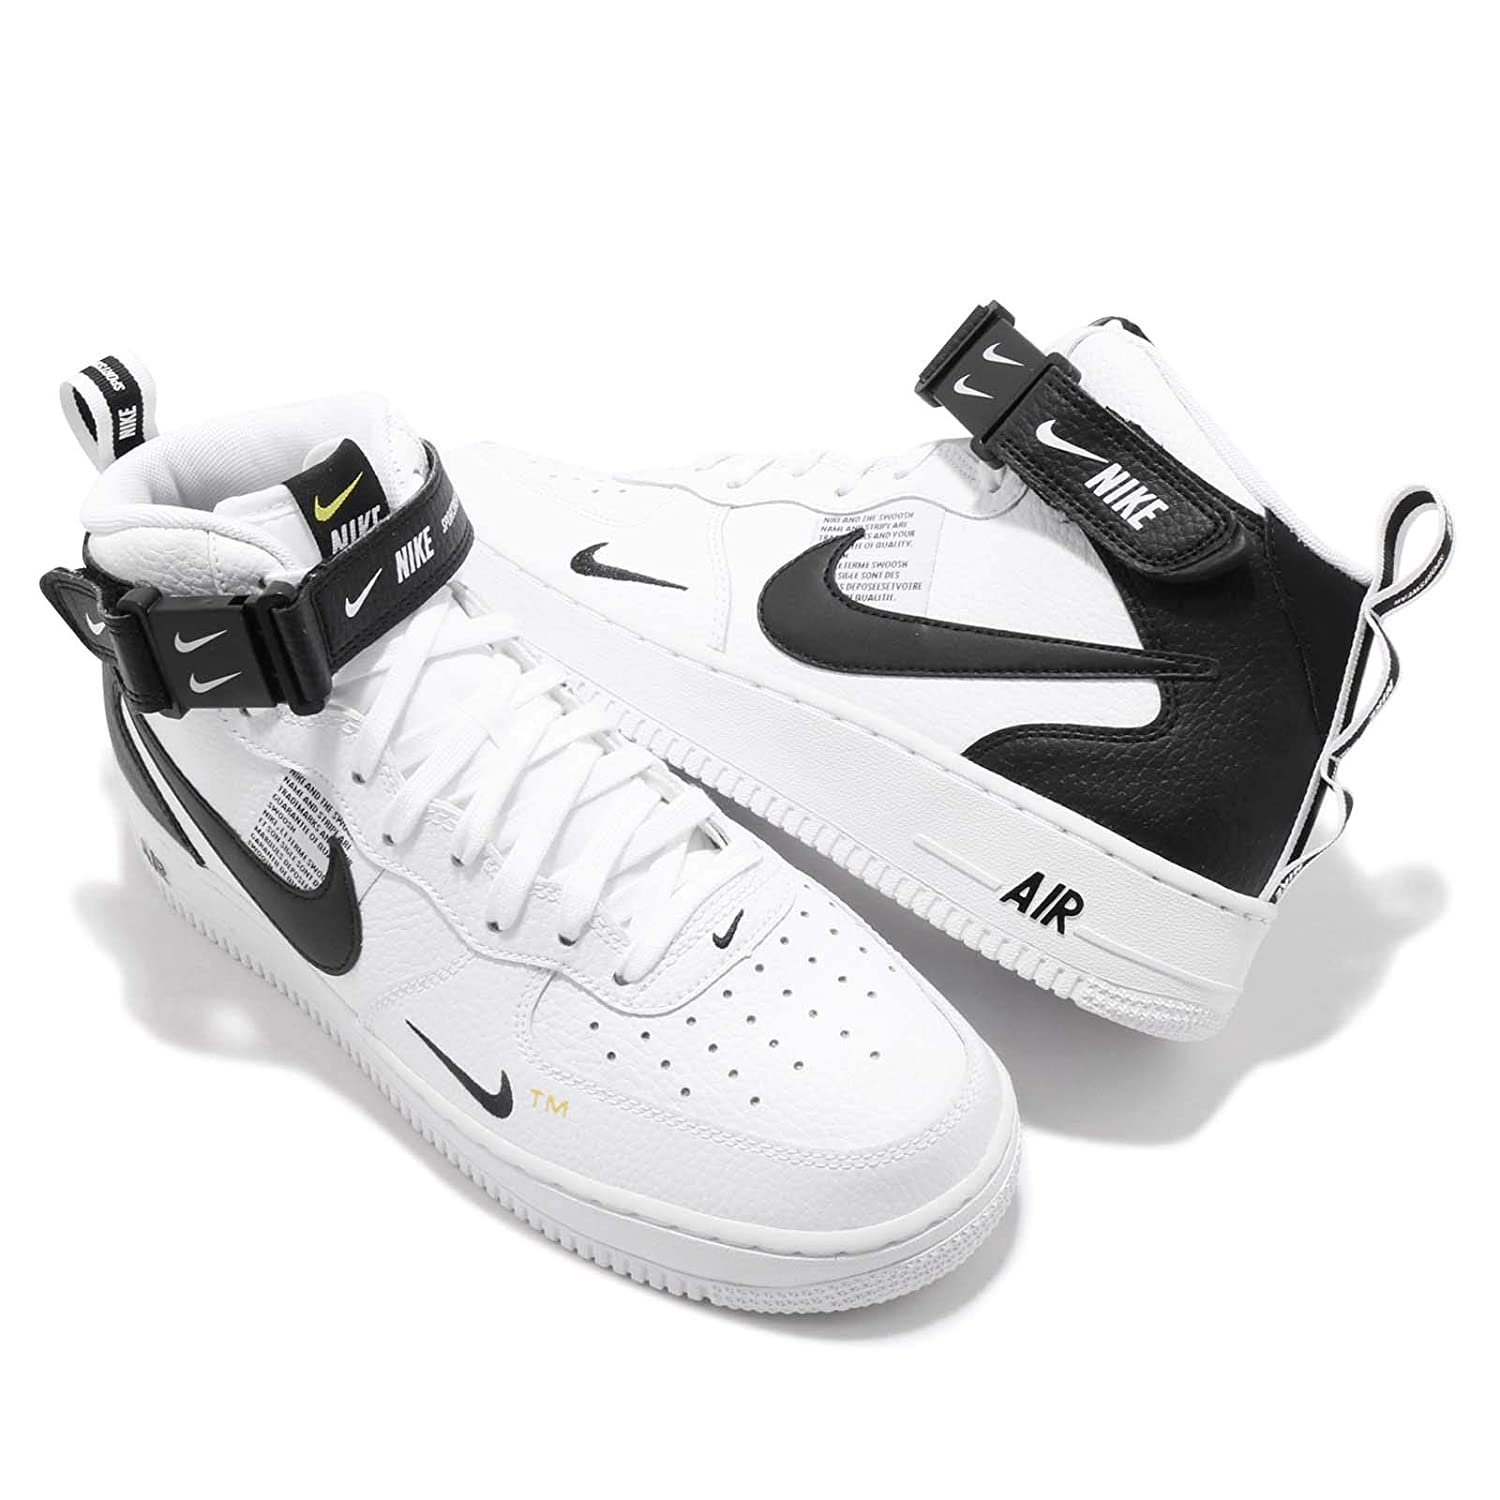 buy popular a82bb ddda1 Nike Men s Air Force 1 Mid  07 Lv8 Gymnastics Shoes, (White Black Tour  Yellow 103), 6 UK  Amazon.co.uk  Shoes   Bags